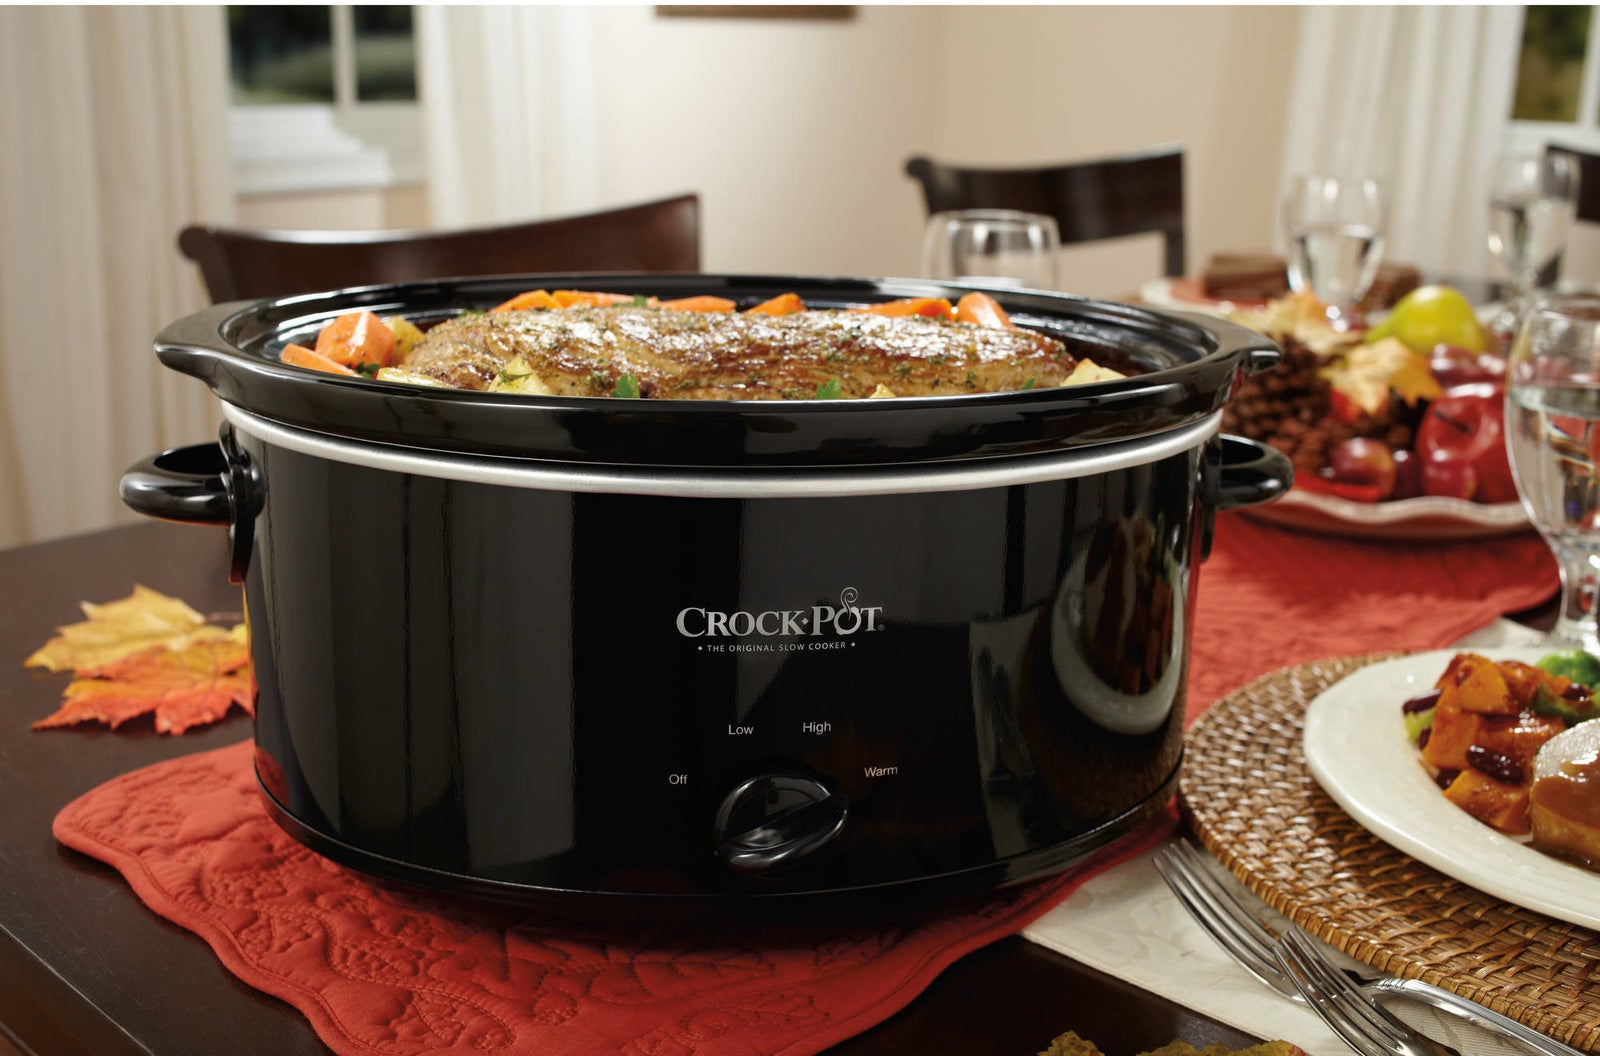 "Never, and I mean NEVER, underestimate the power of a good Crock-Pot. This specific one is dishwasher-safe (yes!), has removable oval stoneware that doubles as a serving dish, and a convenient warm setting (for the family that is frequently eating at different times). It makes enough food to feed nine people — just imagine how many meals you can freeze for another night!Promising review: ""My mom had one, I have one, and now my young adult daughter has one! Trusted companion through time. Lots of competition out there, but I swore and swear by Crock-Pot. After visiting 'brick and mortar' retailers, I convinced her she didn't need the 'digital' stuff. This product keeps it simple. The bonus was that it came with a cookbook — which is TERRIFIC! Who else could do it better? Thank you!"" —kanekGet it from Walmart for $19.77."